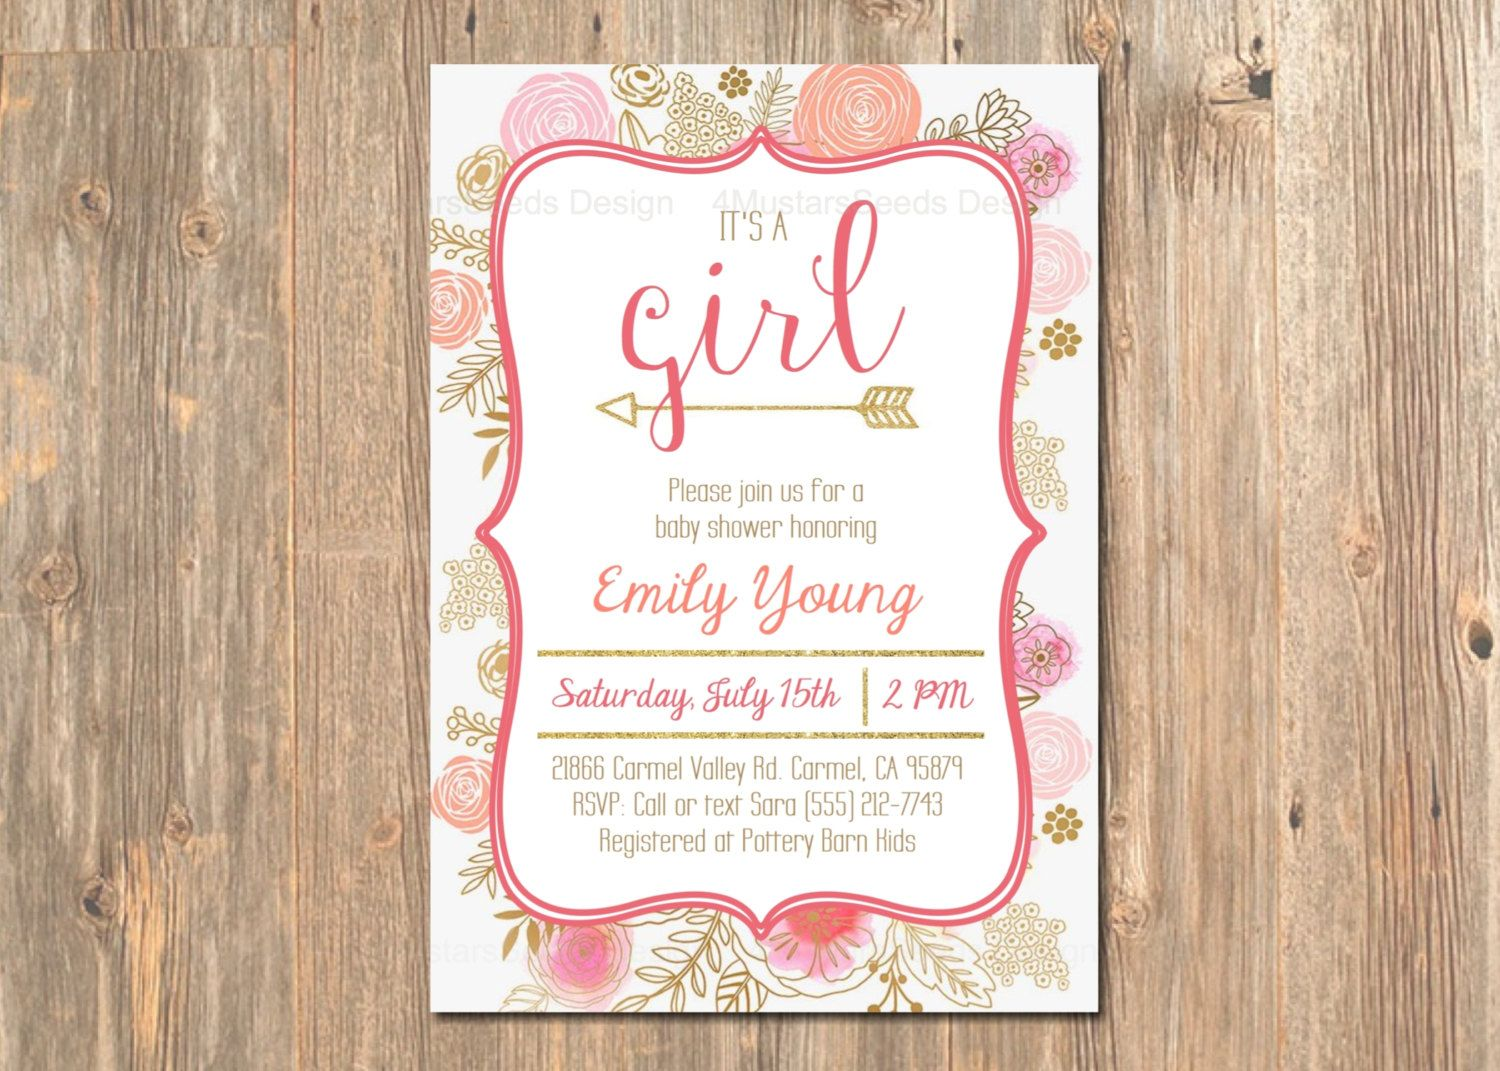 free e cards bridal shower invitations%0A Baby Shower Invitation  It u    s a Girl  Boho invite Pink  u     Gold Glitter   Modern  Floral Invitations  Girl u    s  Card  Cards  Baby u    s  Party Invites